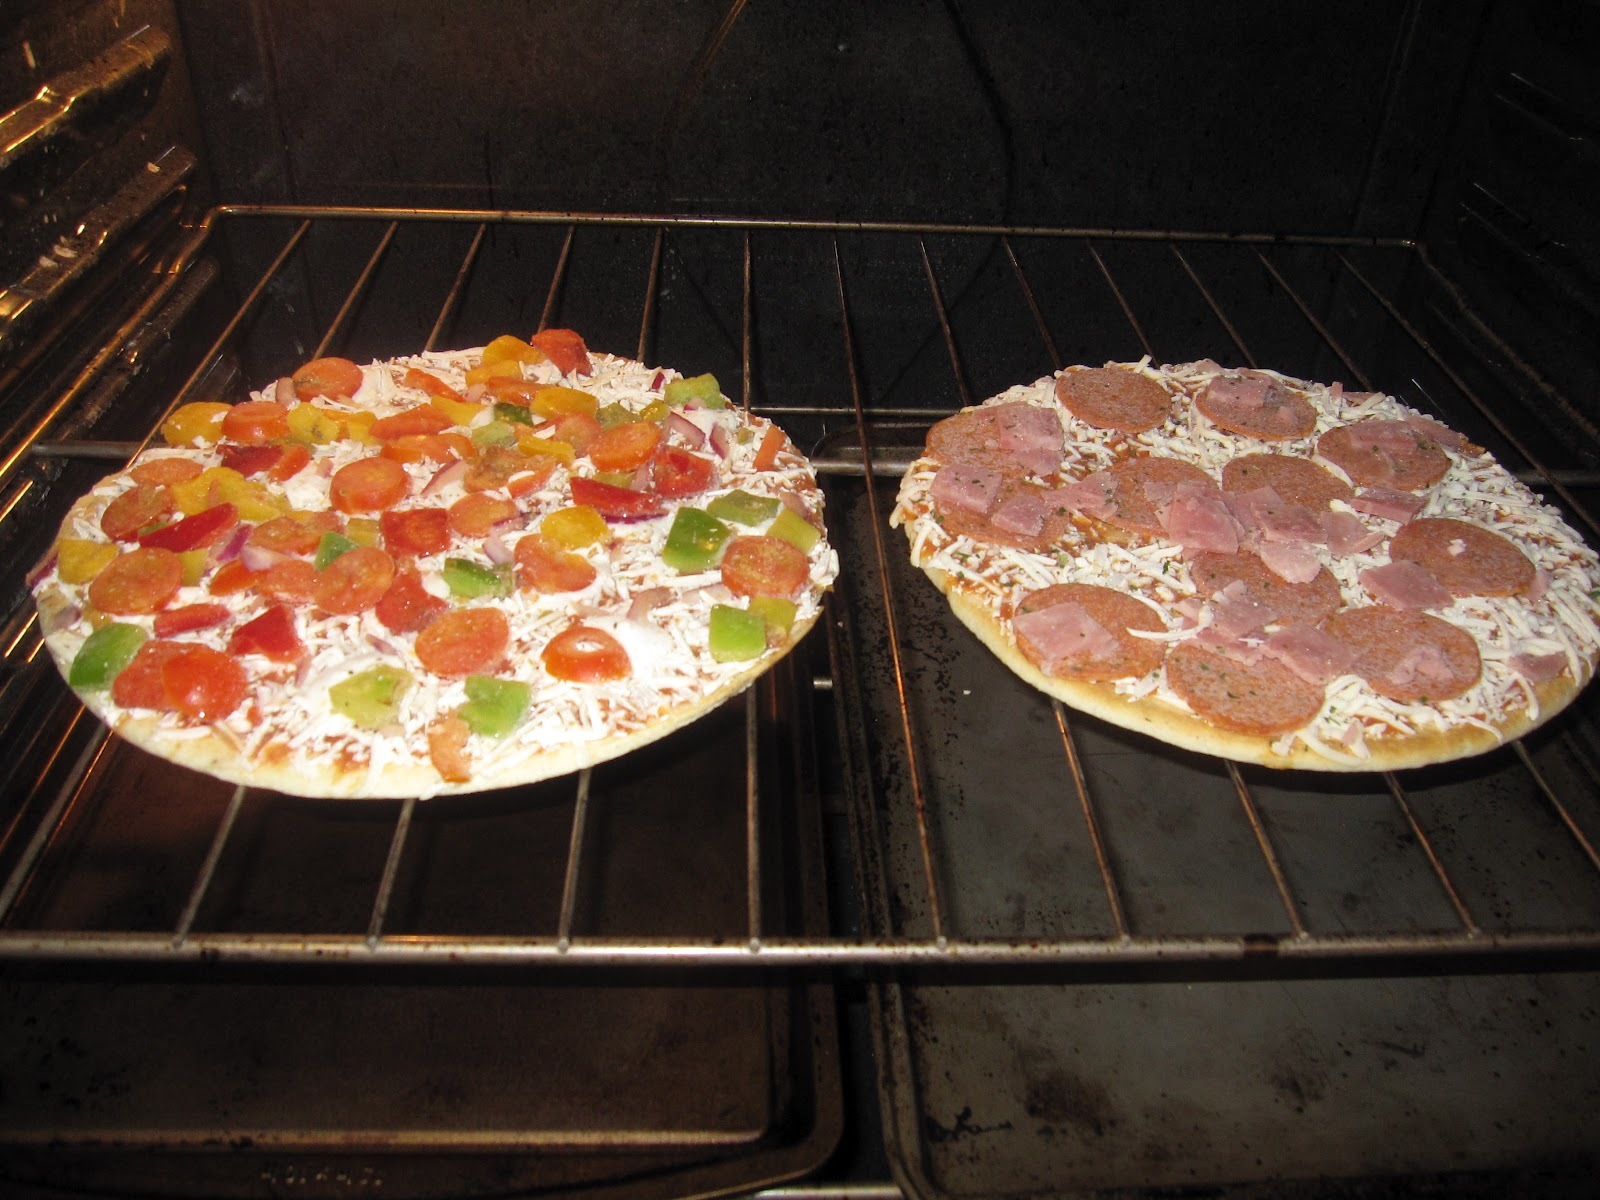 How To Make A Frozen Pizza A Blog For My Mom Ristorante Pizza Review A Sponsored Post